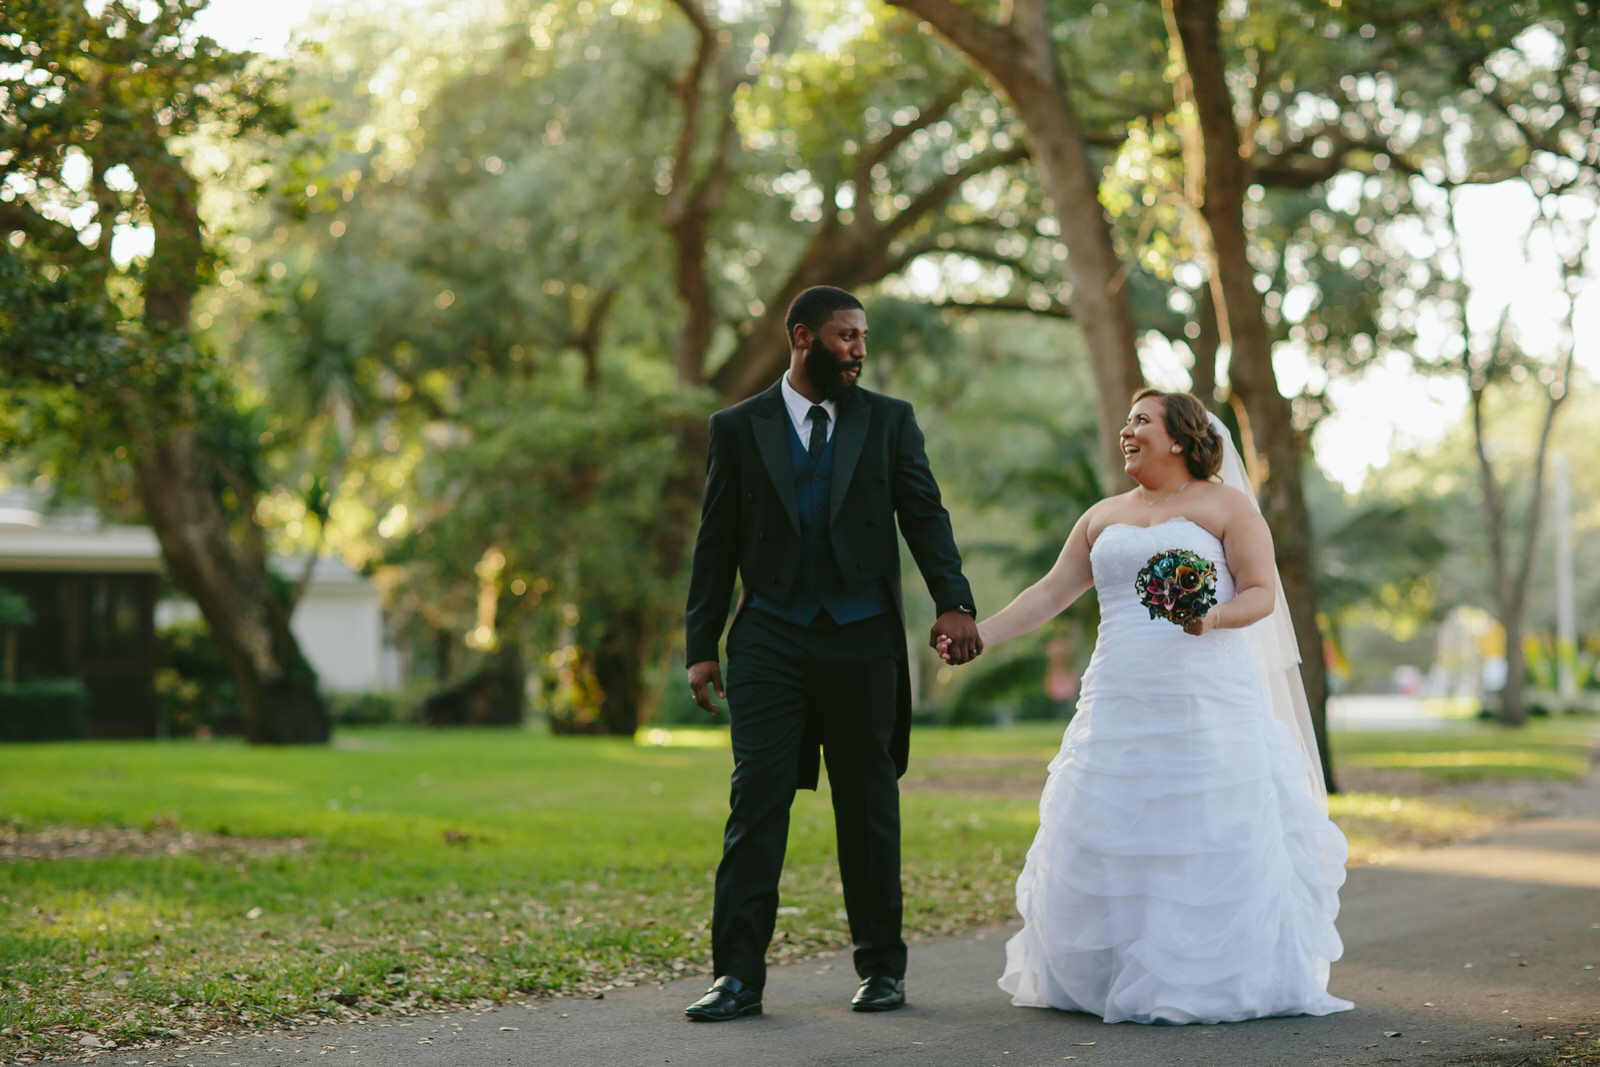 bride-and-groom-classic-timeless-wedding-photography.jpg